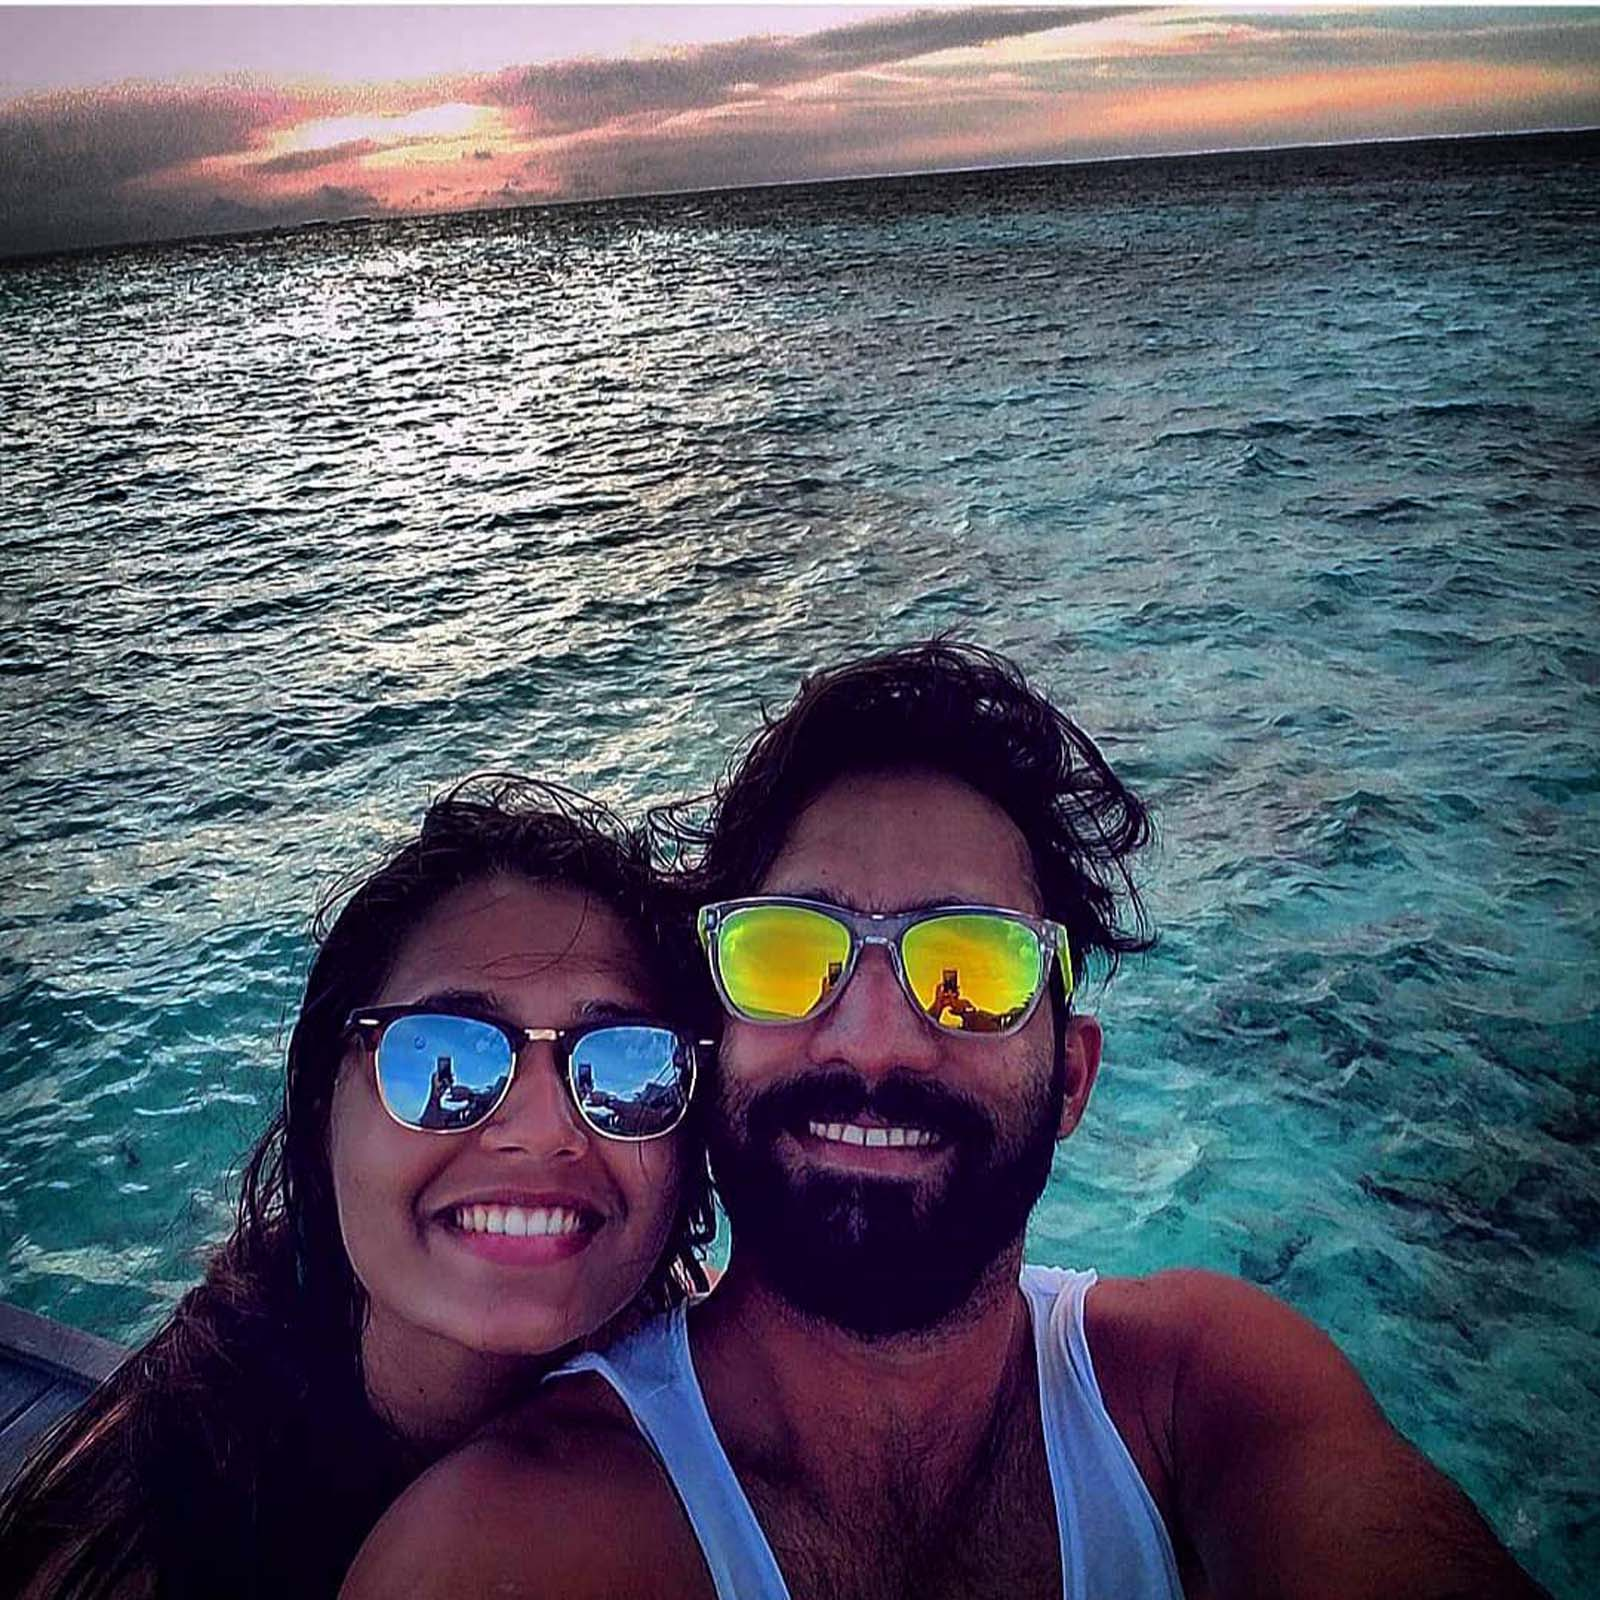 Dinesh Karthik and wife Dipika Pallikal's heartwarming throwback pictures